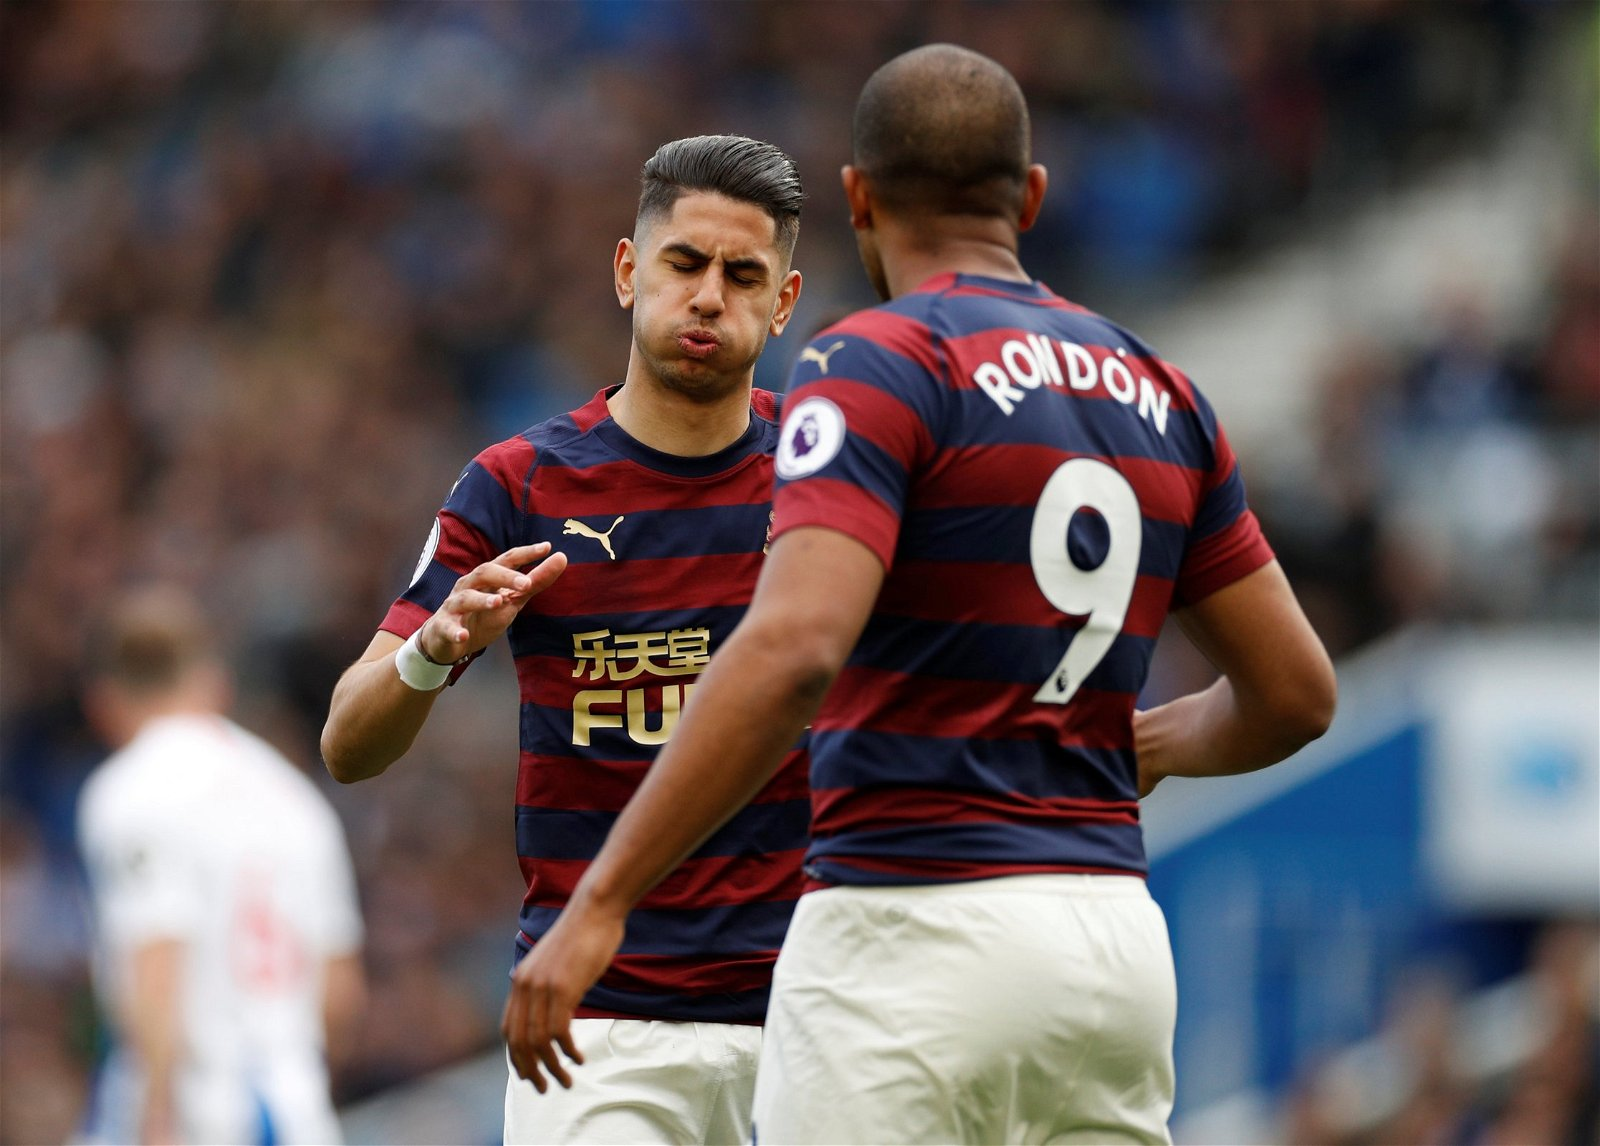 Salomon Rondon 2 - 32 key passes: Jimenez will step up another level if Wolves land robust attacker - opinion